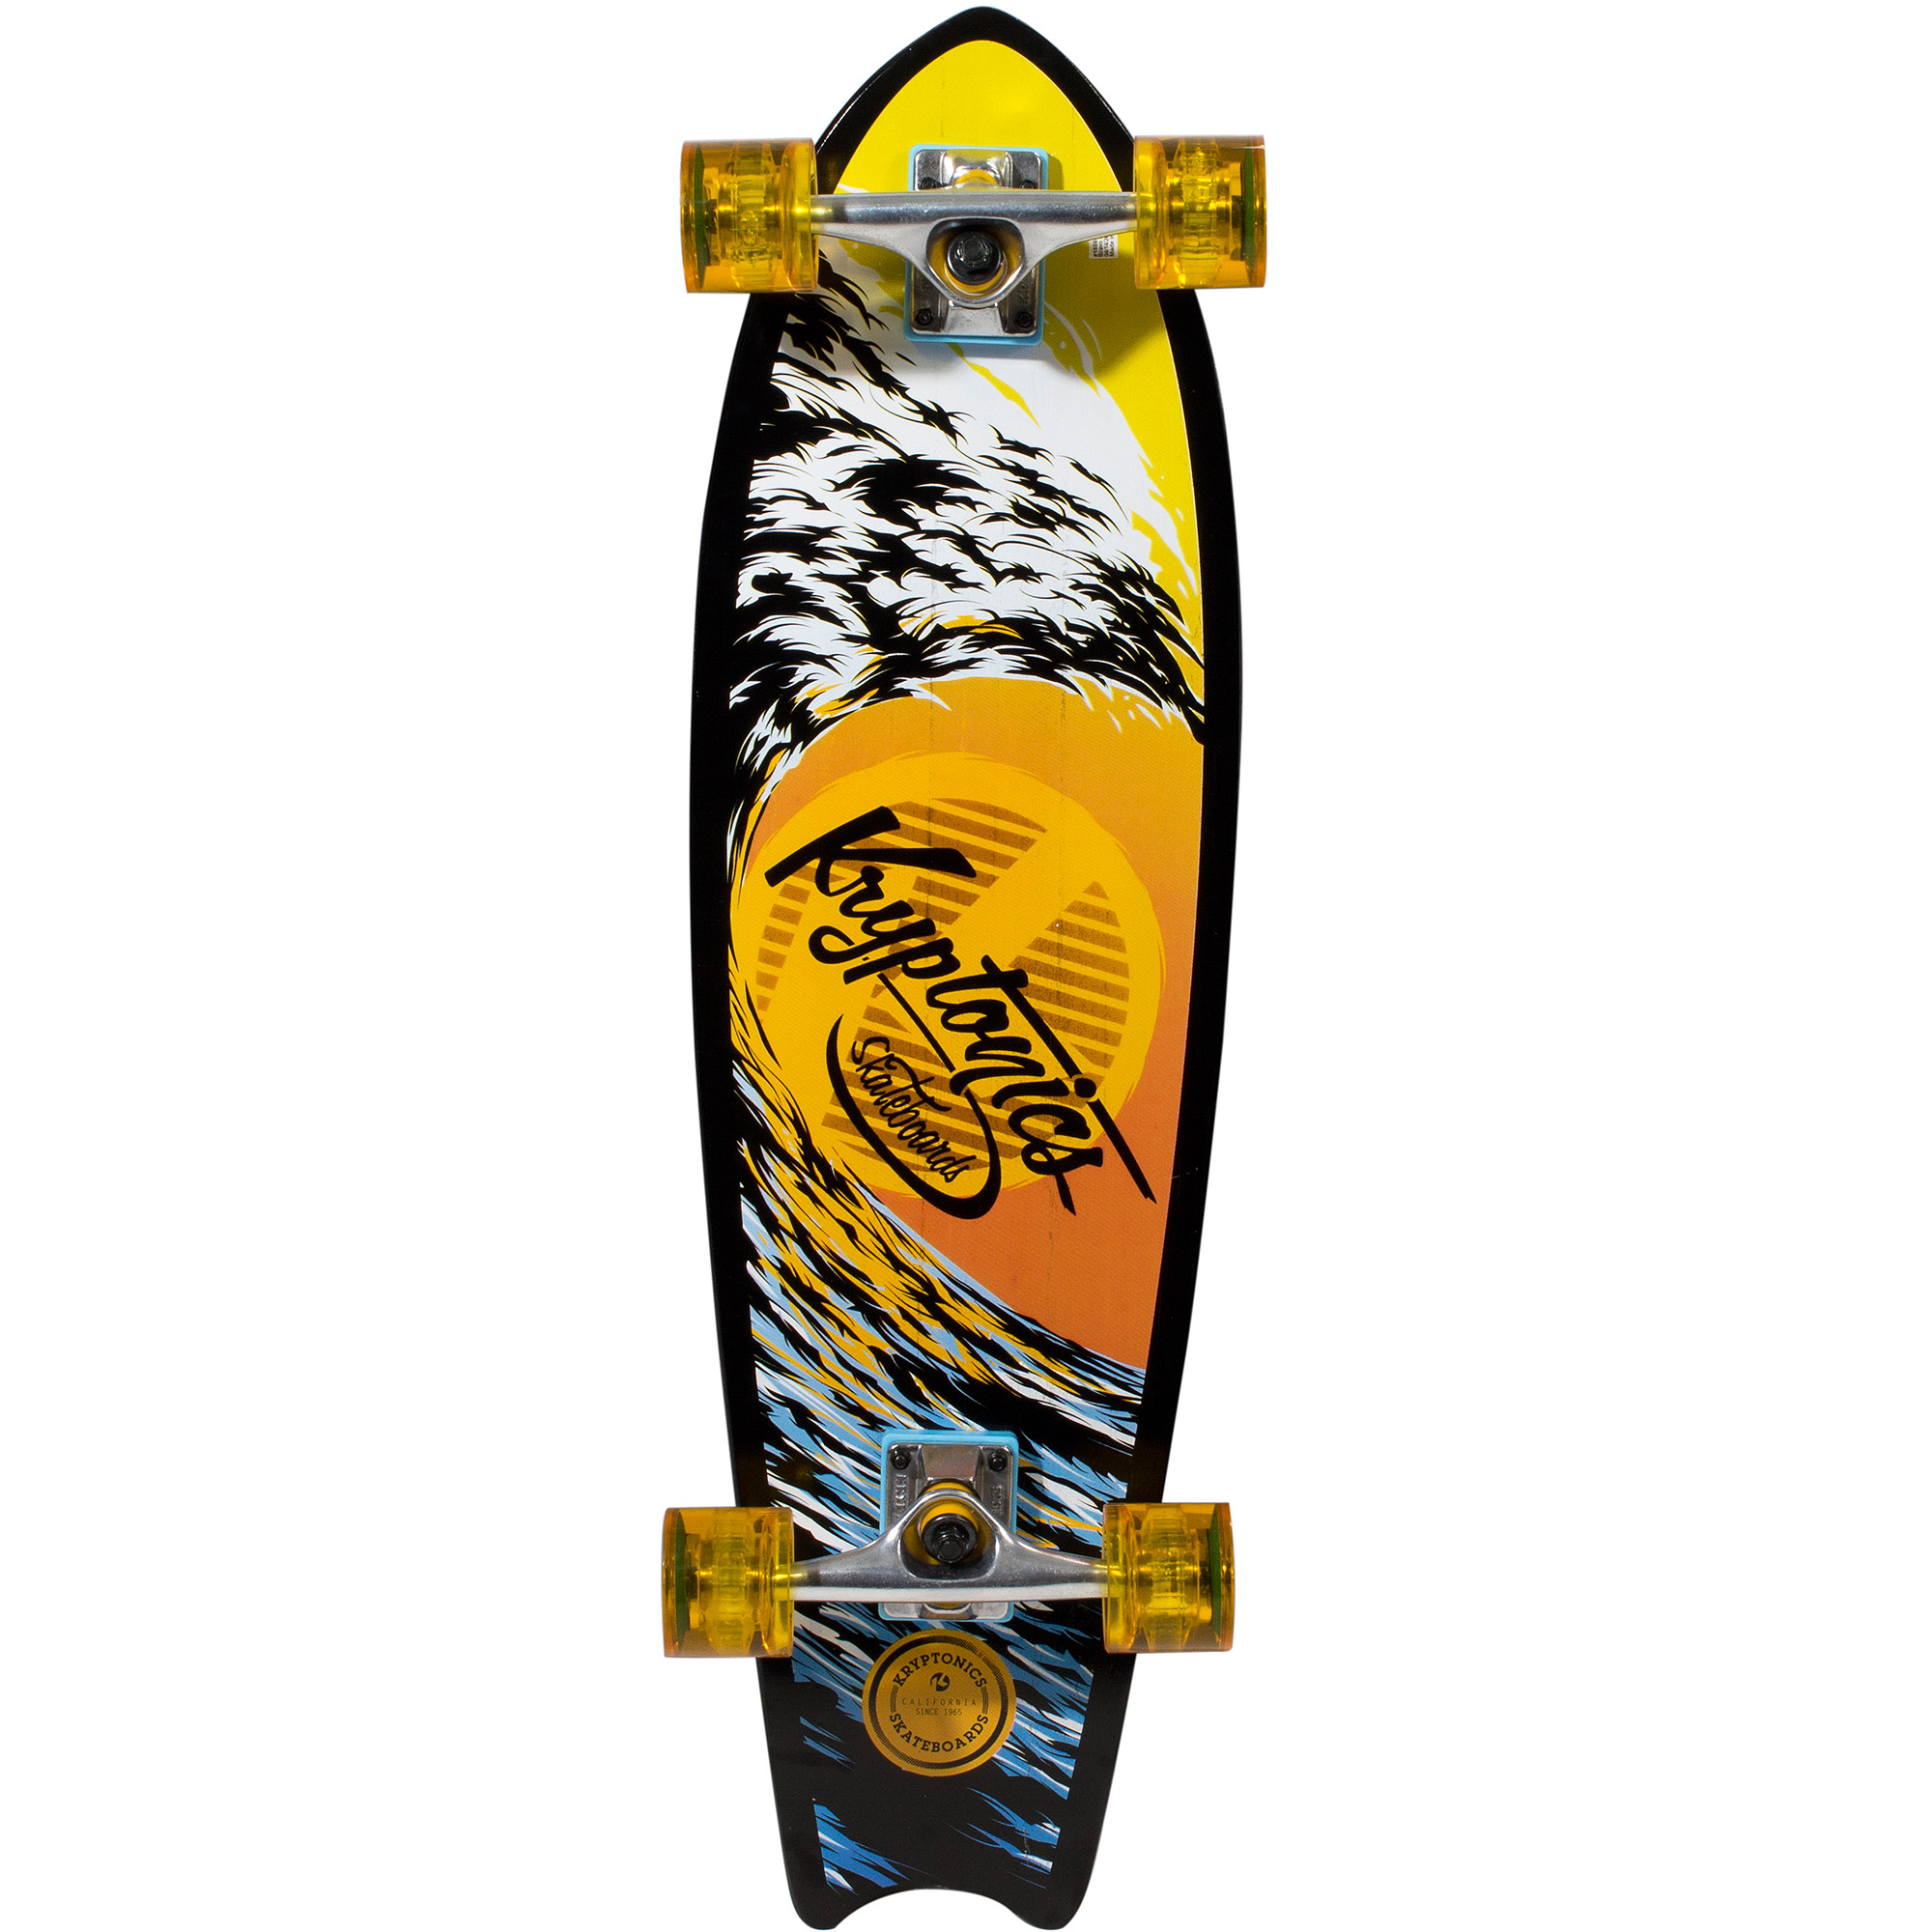 "Kryptonics 32"" Mini Longboard Complete Skateboard"